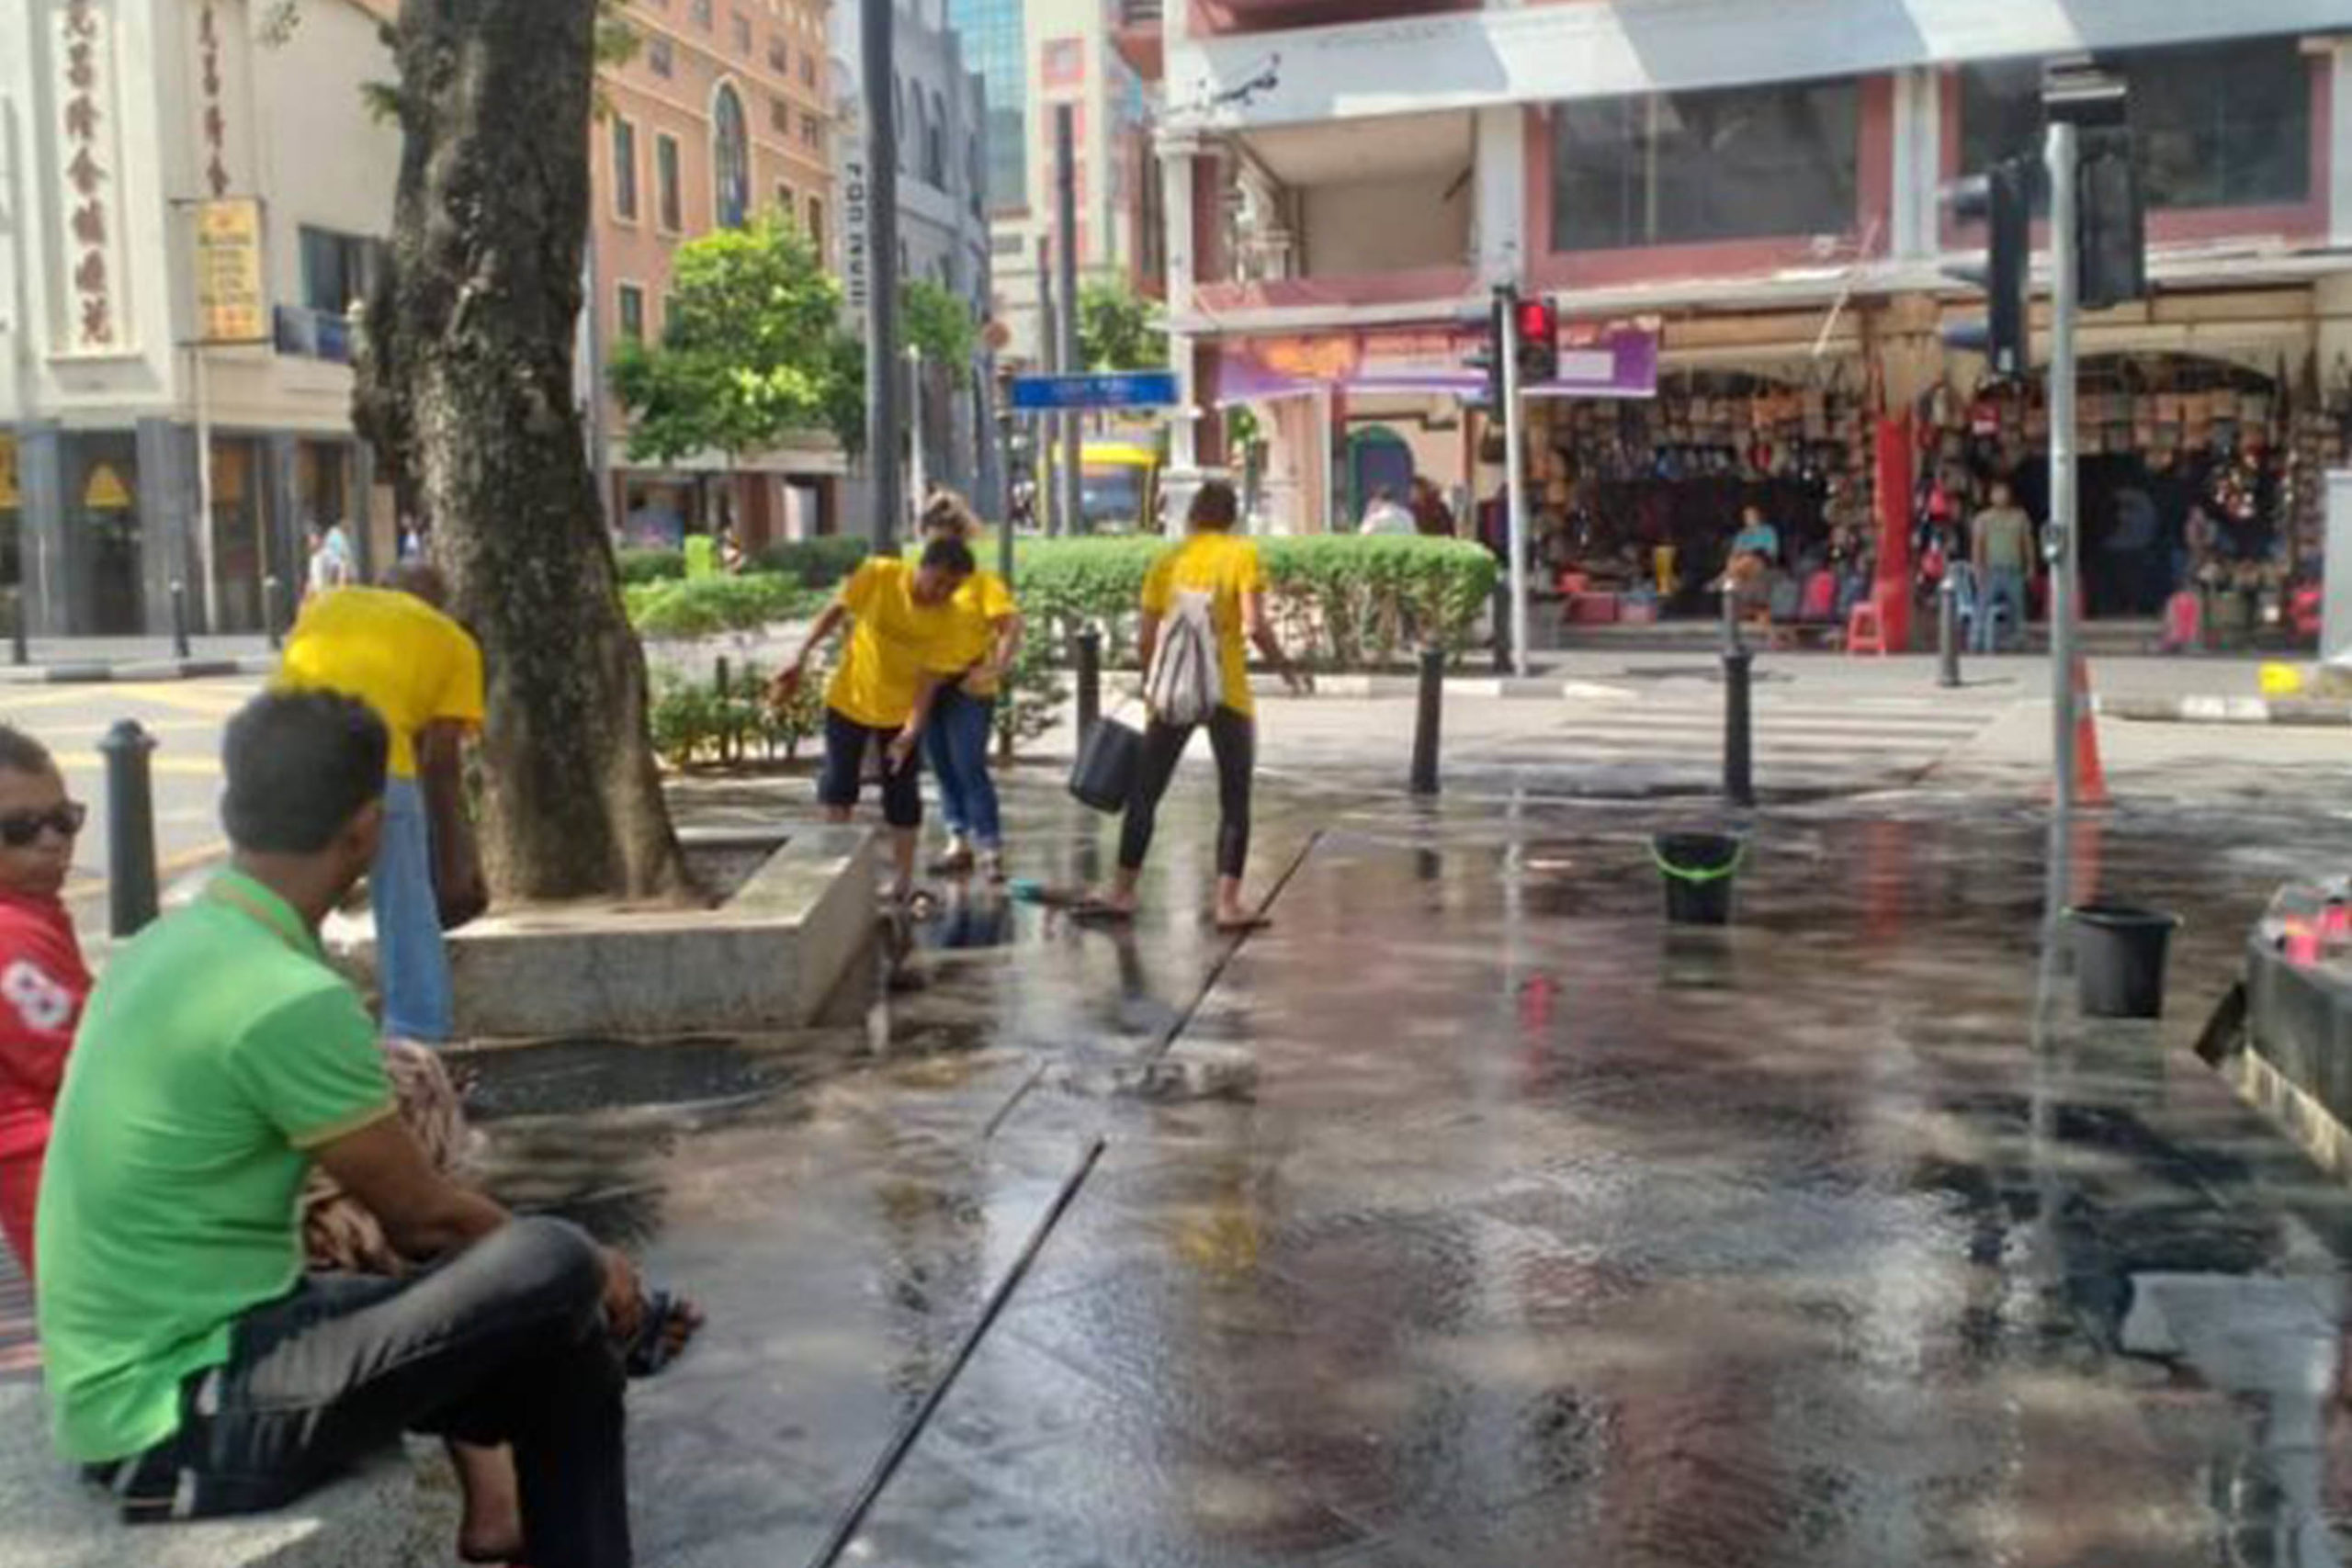 Community Connect was a pilot project aimed at helping individuals sleeping rough in Kuala Lumpur find employment and a way to exit homelessness